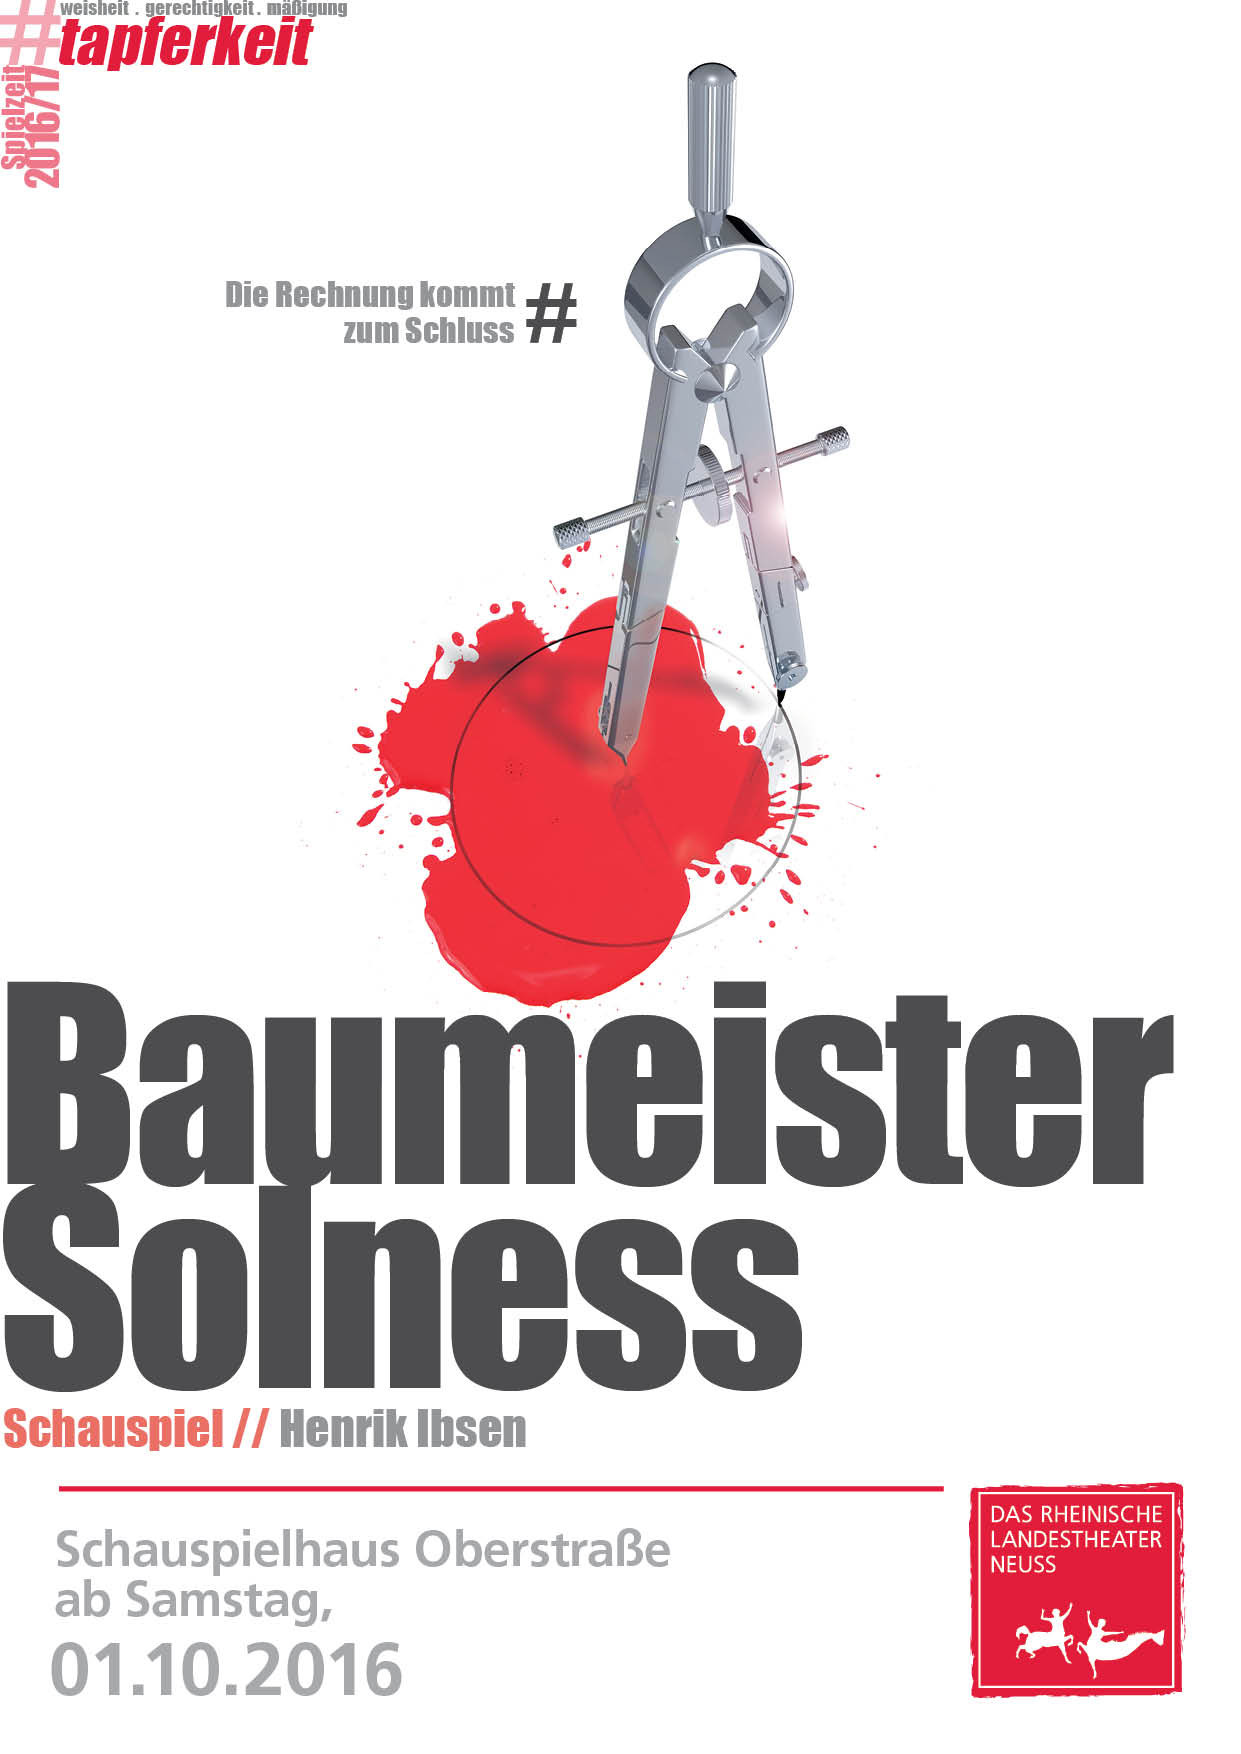 Baumeister Solness